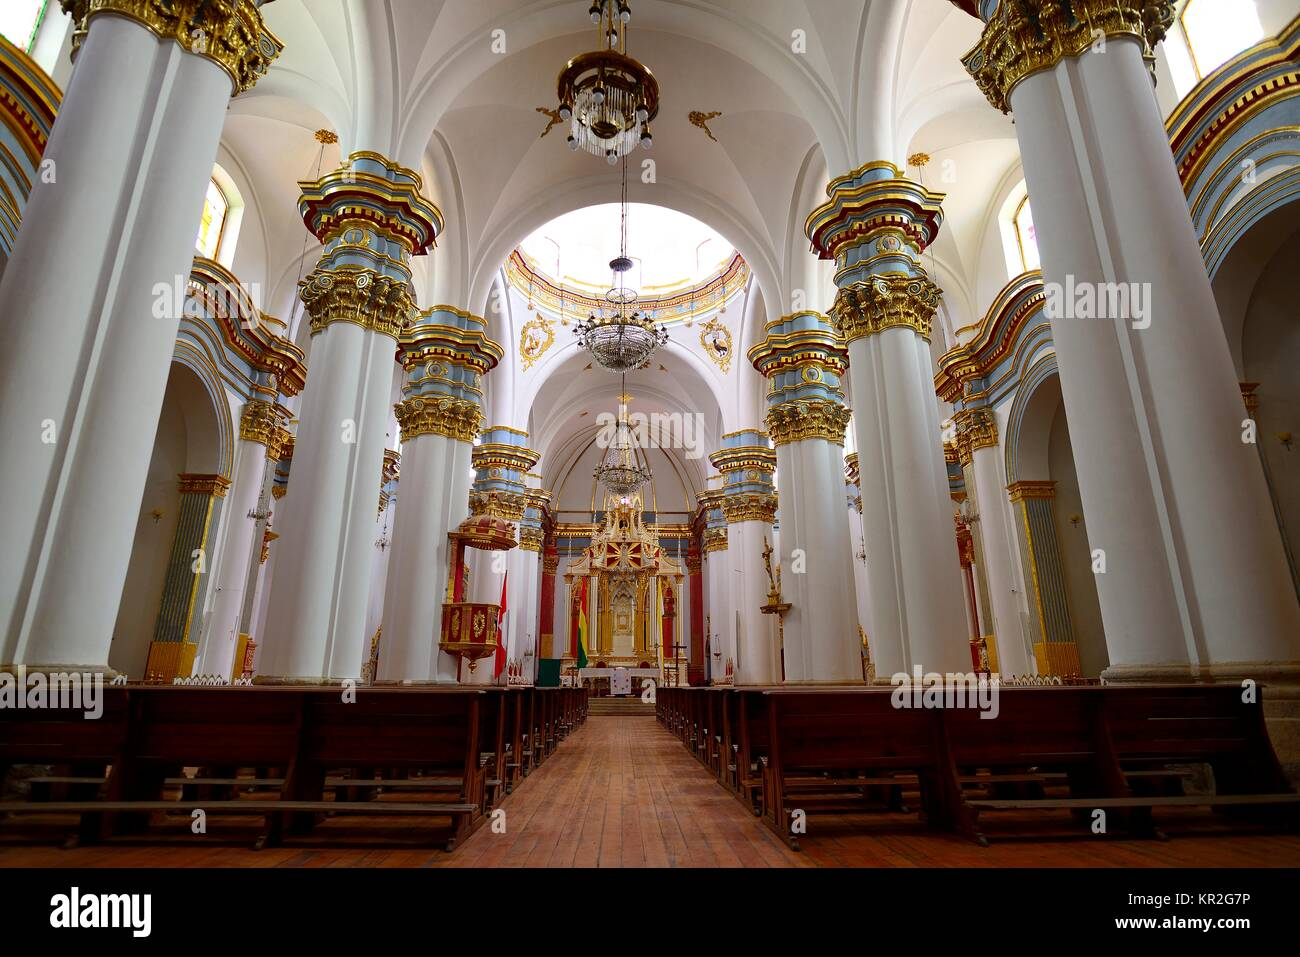 Interior of the cathedral, Potosí, Tomás Frías province, Bolivia - Stock Image